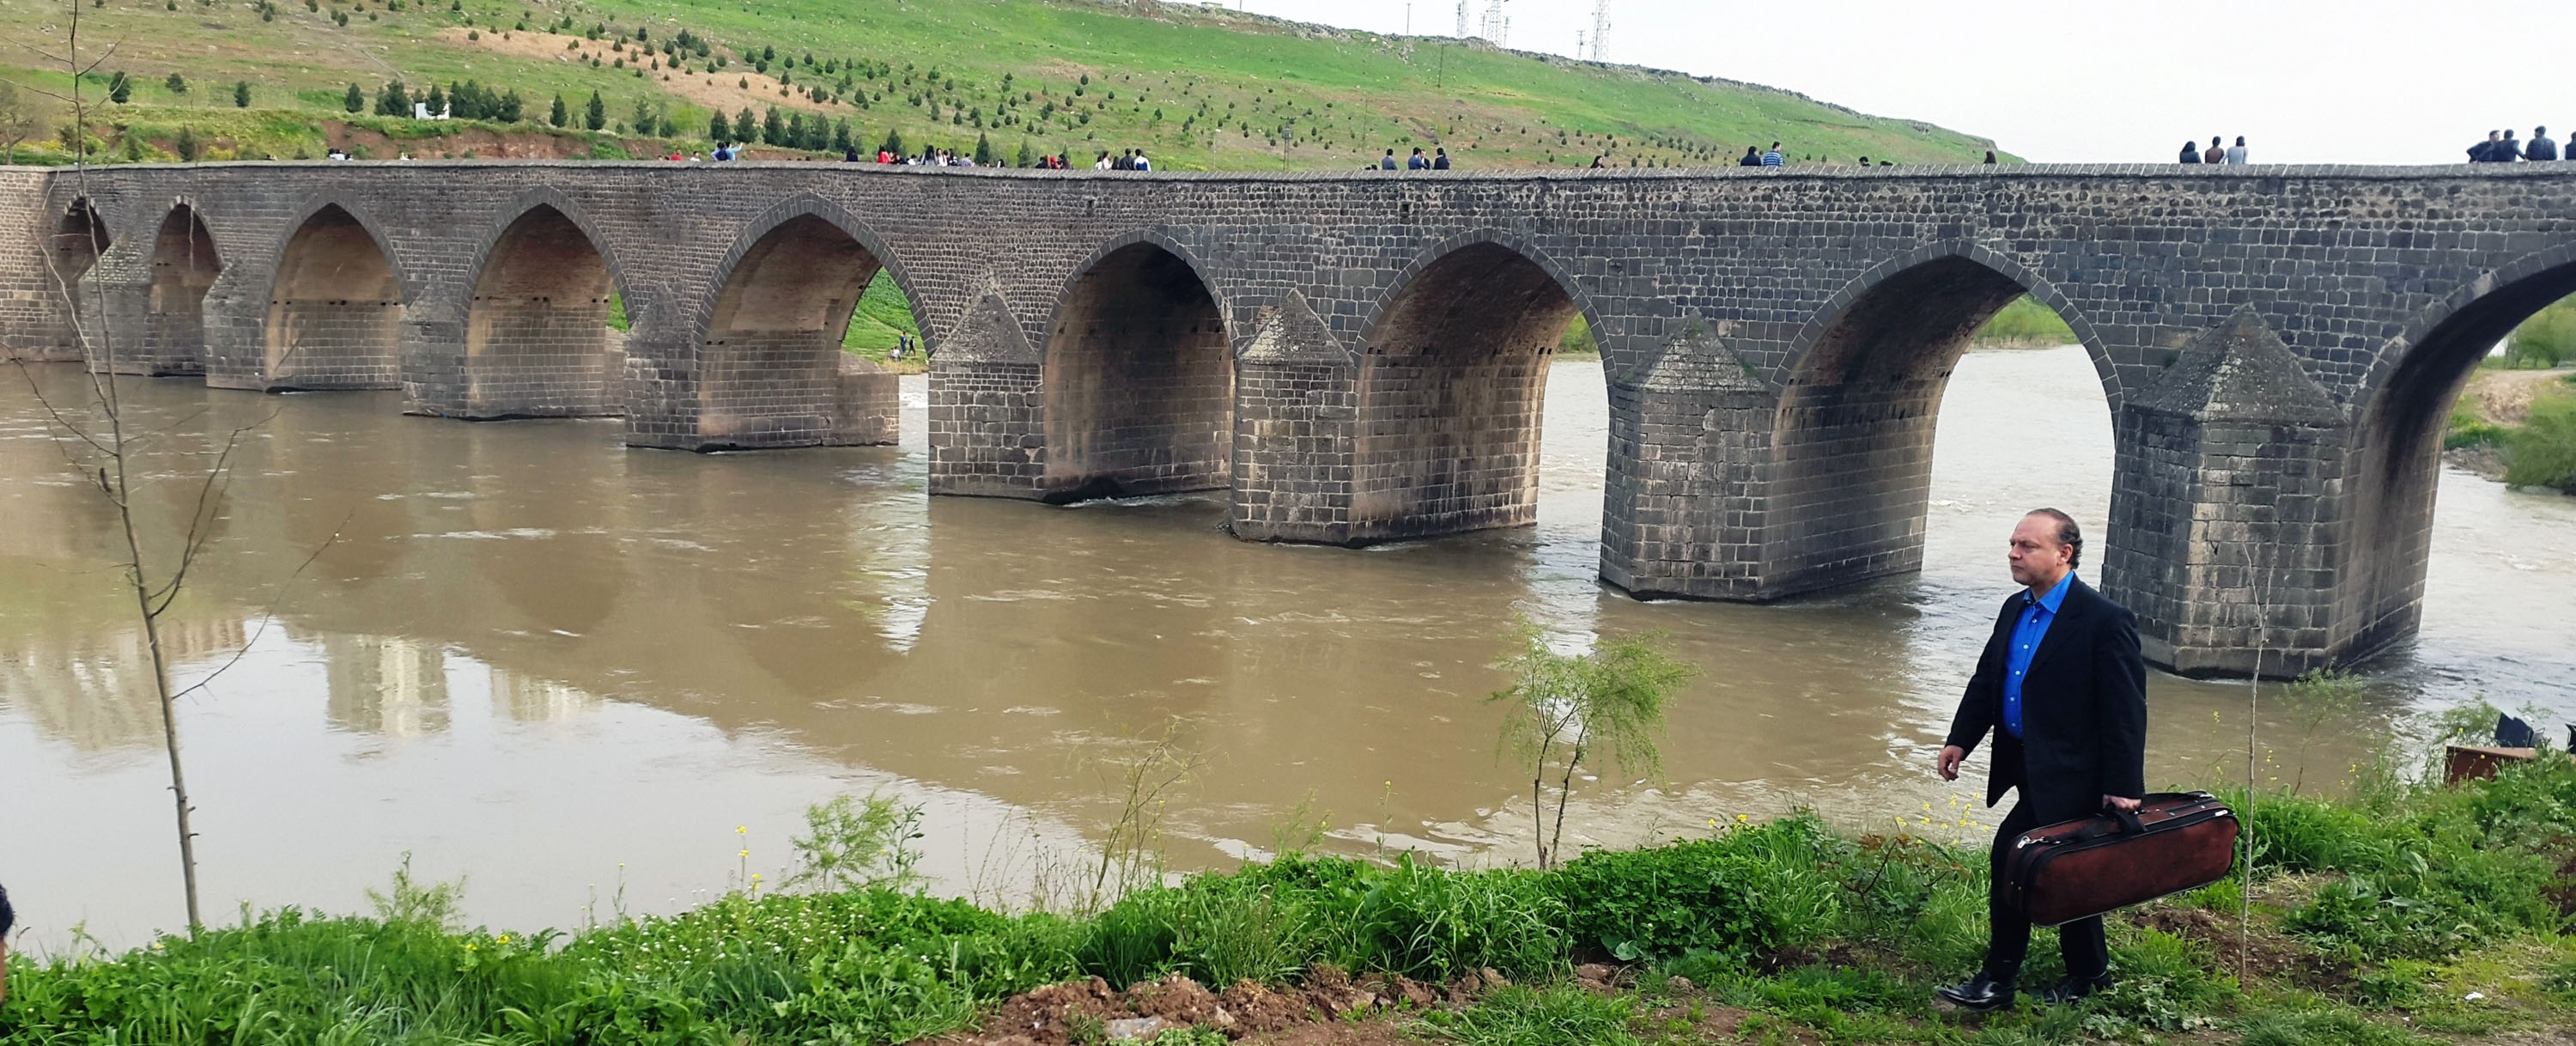 Ten-eyed Bridge on River Tigris, Diyarbakır